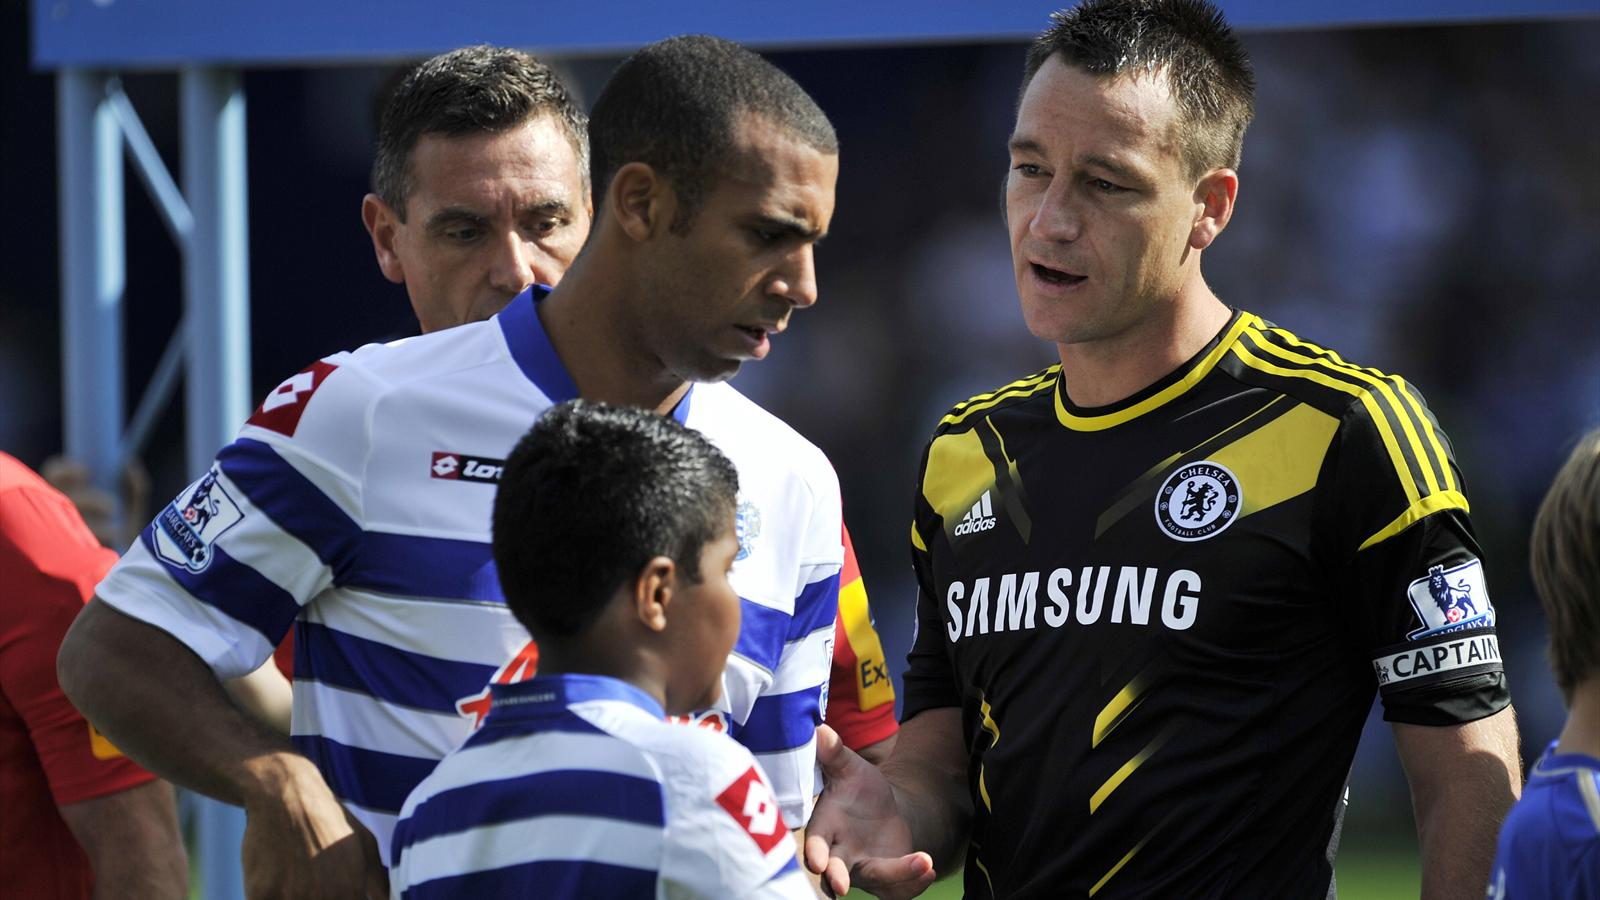 Queens Park Rangers' English defender Anton Ferdinand (L) avoids shaking hands with Chelsea's English defender John Terry (R) before the English Premier League football match between Queens Park Rangers and Chelsea at Loftus Road in London (AFP)